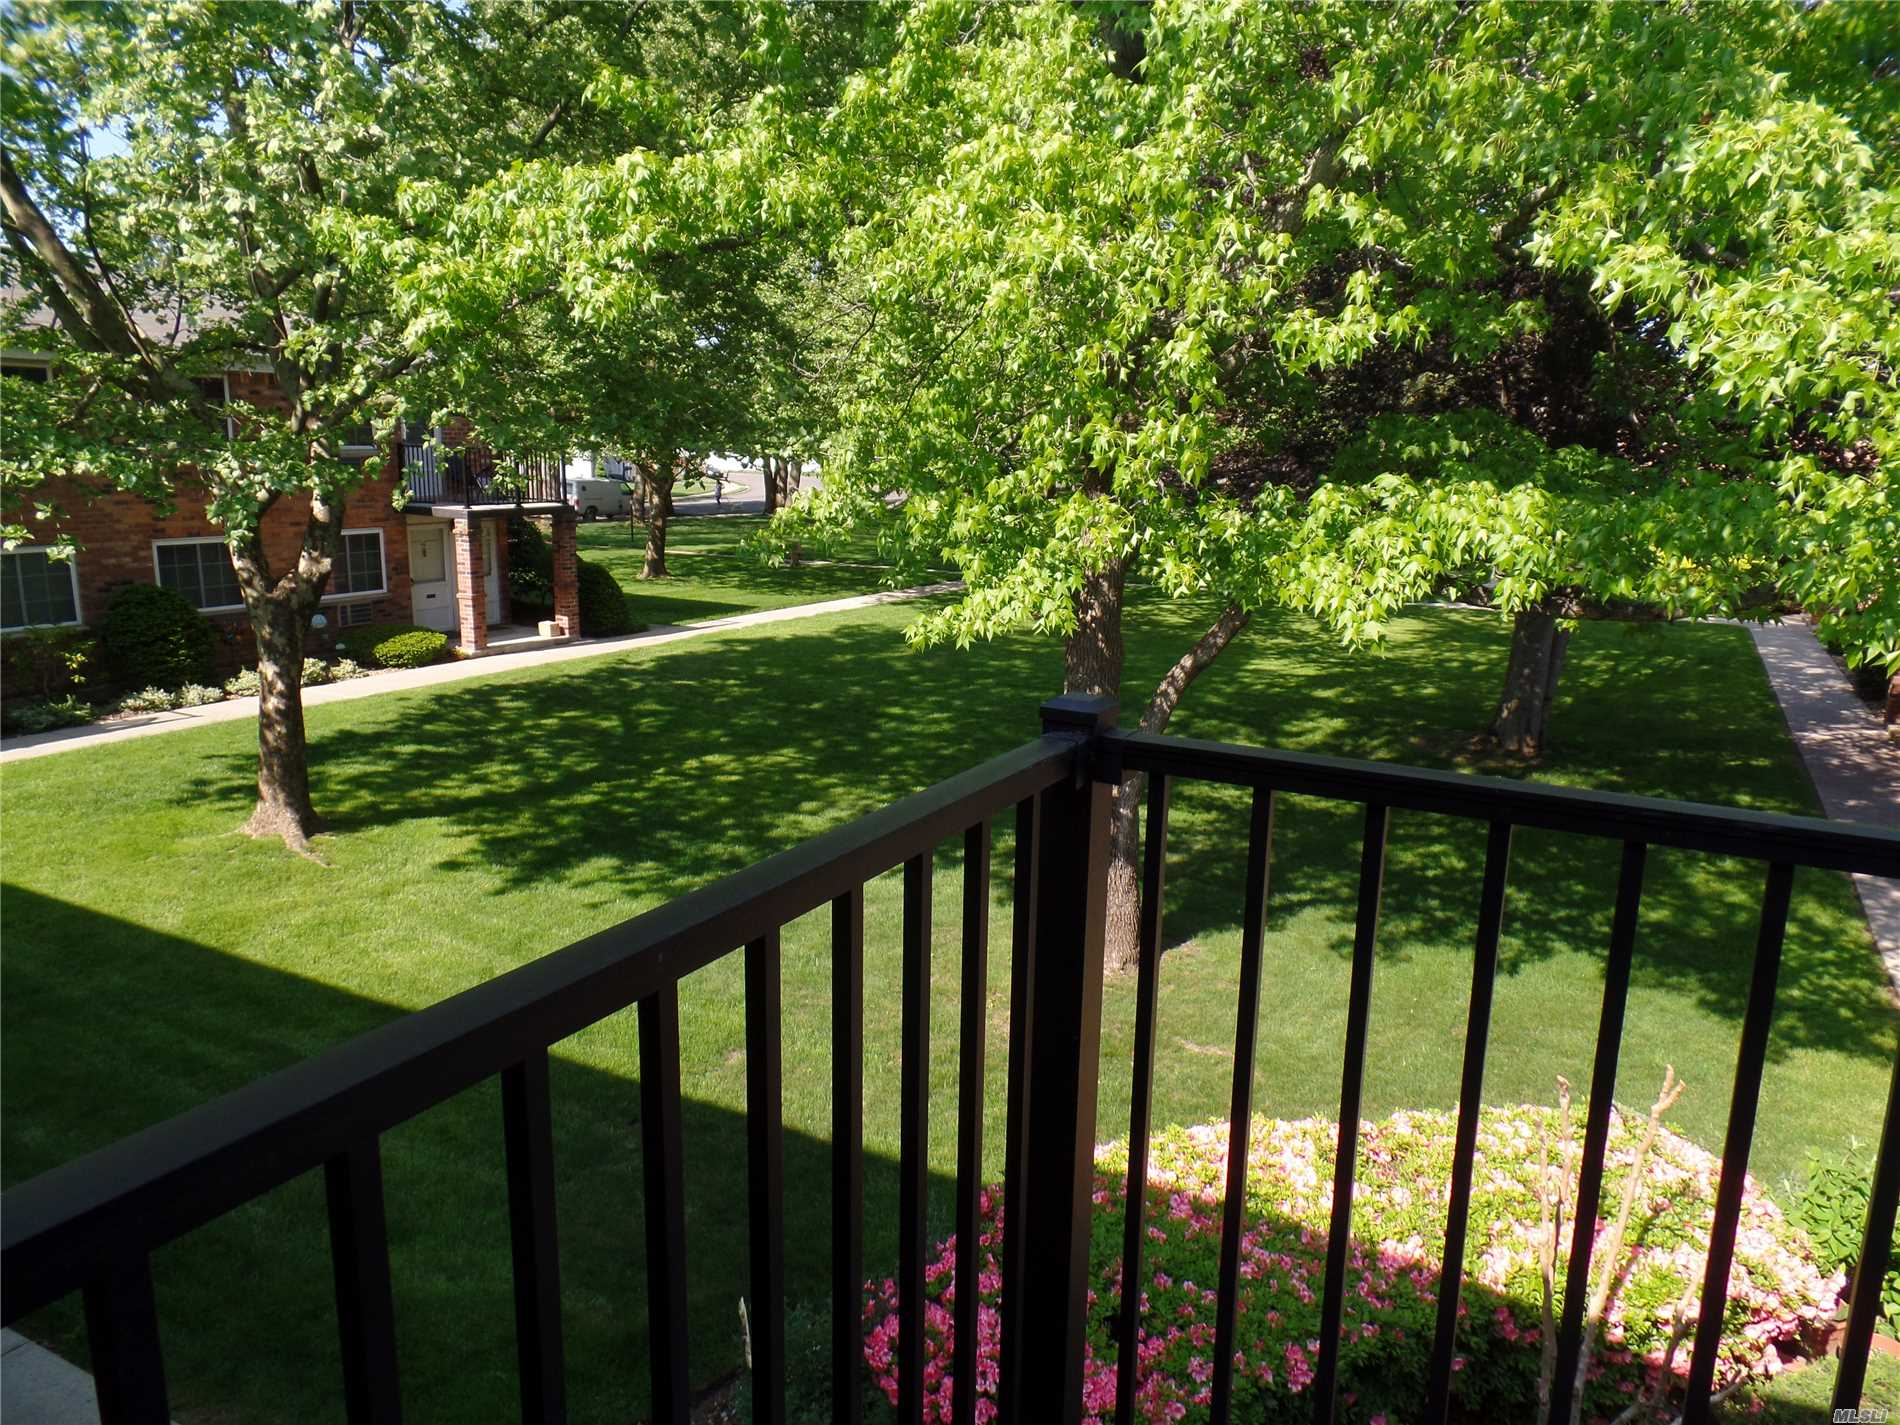 Location Is Everything!! Hhh Schools, Private Entry Into Large Sunny 2 Bedroom On Upper Floor With Balcony Overlooking The Courtyard And Grounds; Situated In A Secluded Residential Community; Hardwood Floors Beneath Carpet; Lots Of Closets; Maintenance Is Approx 60% Deductible;And Includes Taxes, Heating, Gas Cooling, Hw, Parking, And Does Not Reflect Star; Walk To Lirr, Bethpage State Park, Village Restaurants And Shopping. Near 110 Corridor And Suny Farmingdale